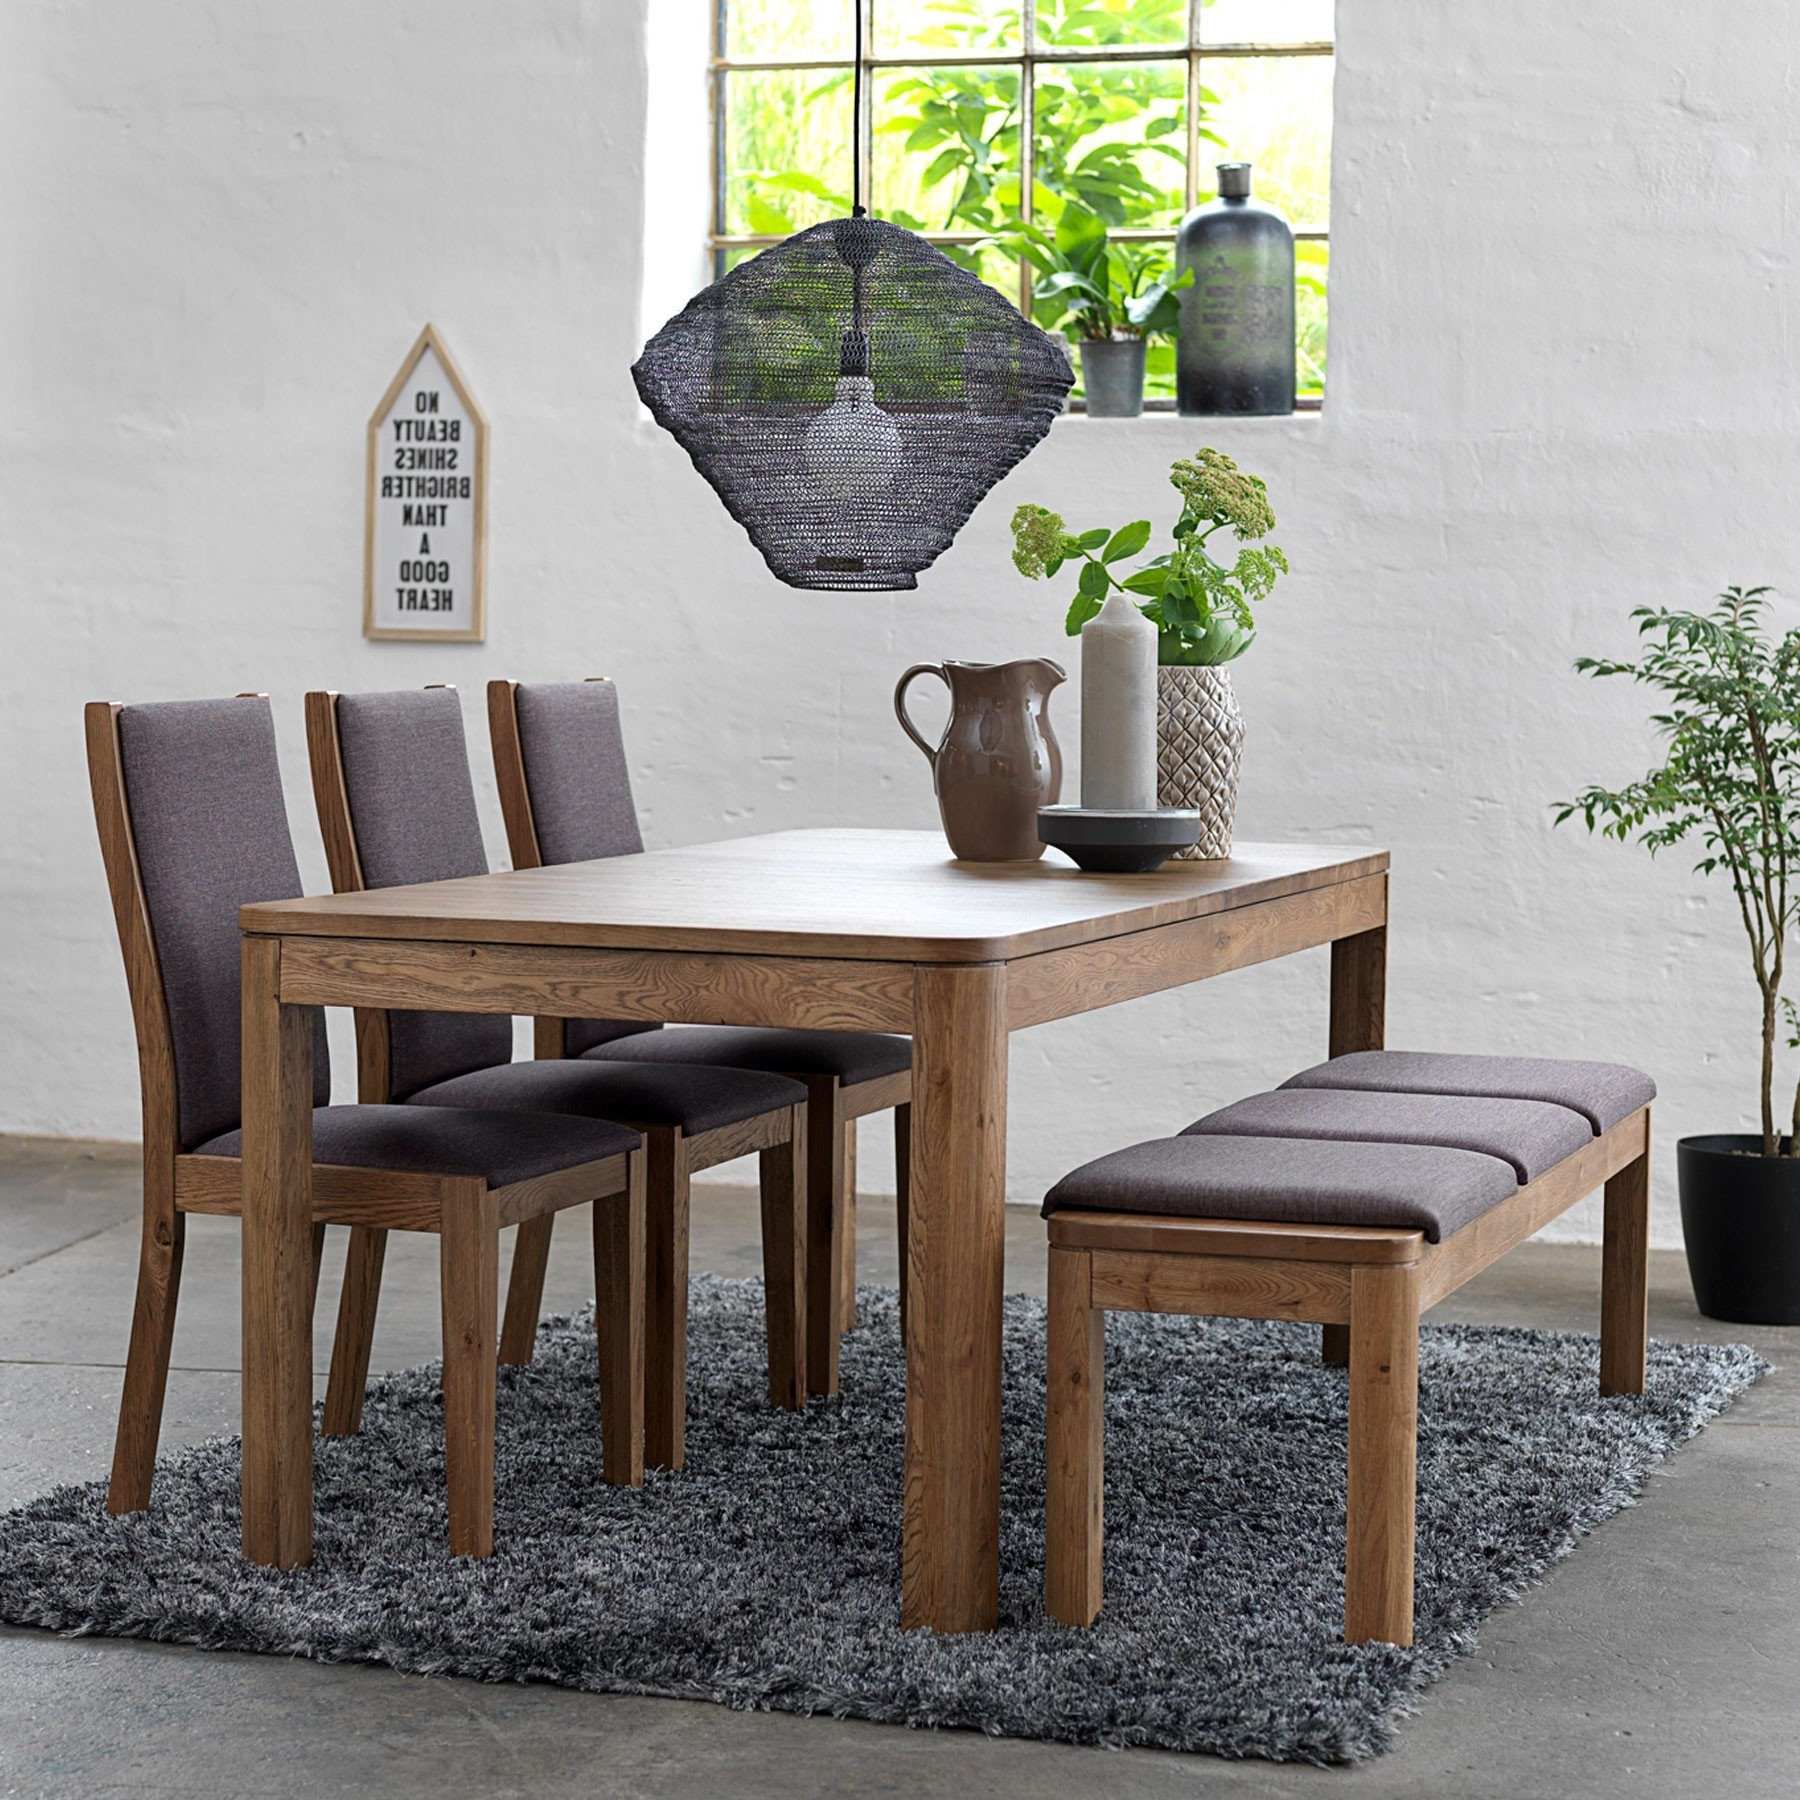 Most Popular Contemporary 6 Seating Rectangular Dining Tables Pertaining To 50+ Dining Table With Bench You'll Love In 2020 – Visual Hunt (Gallery 2 of 30)